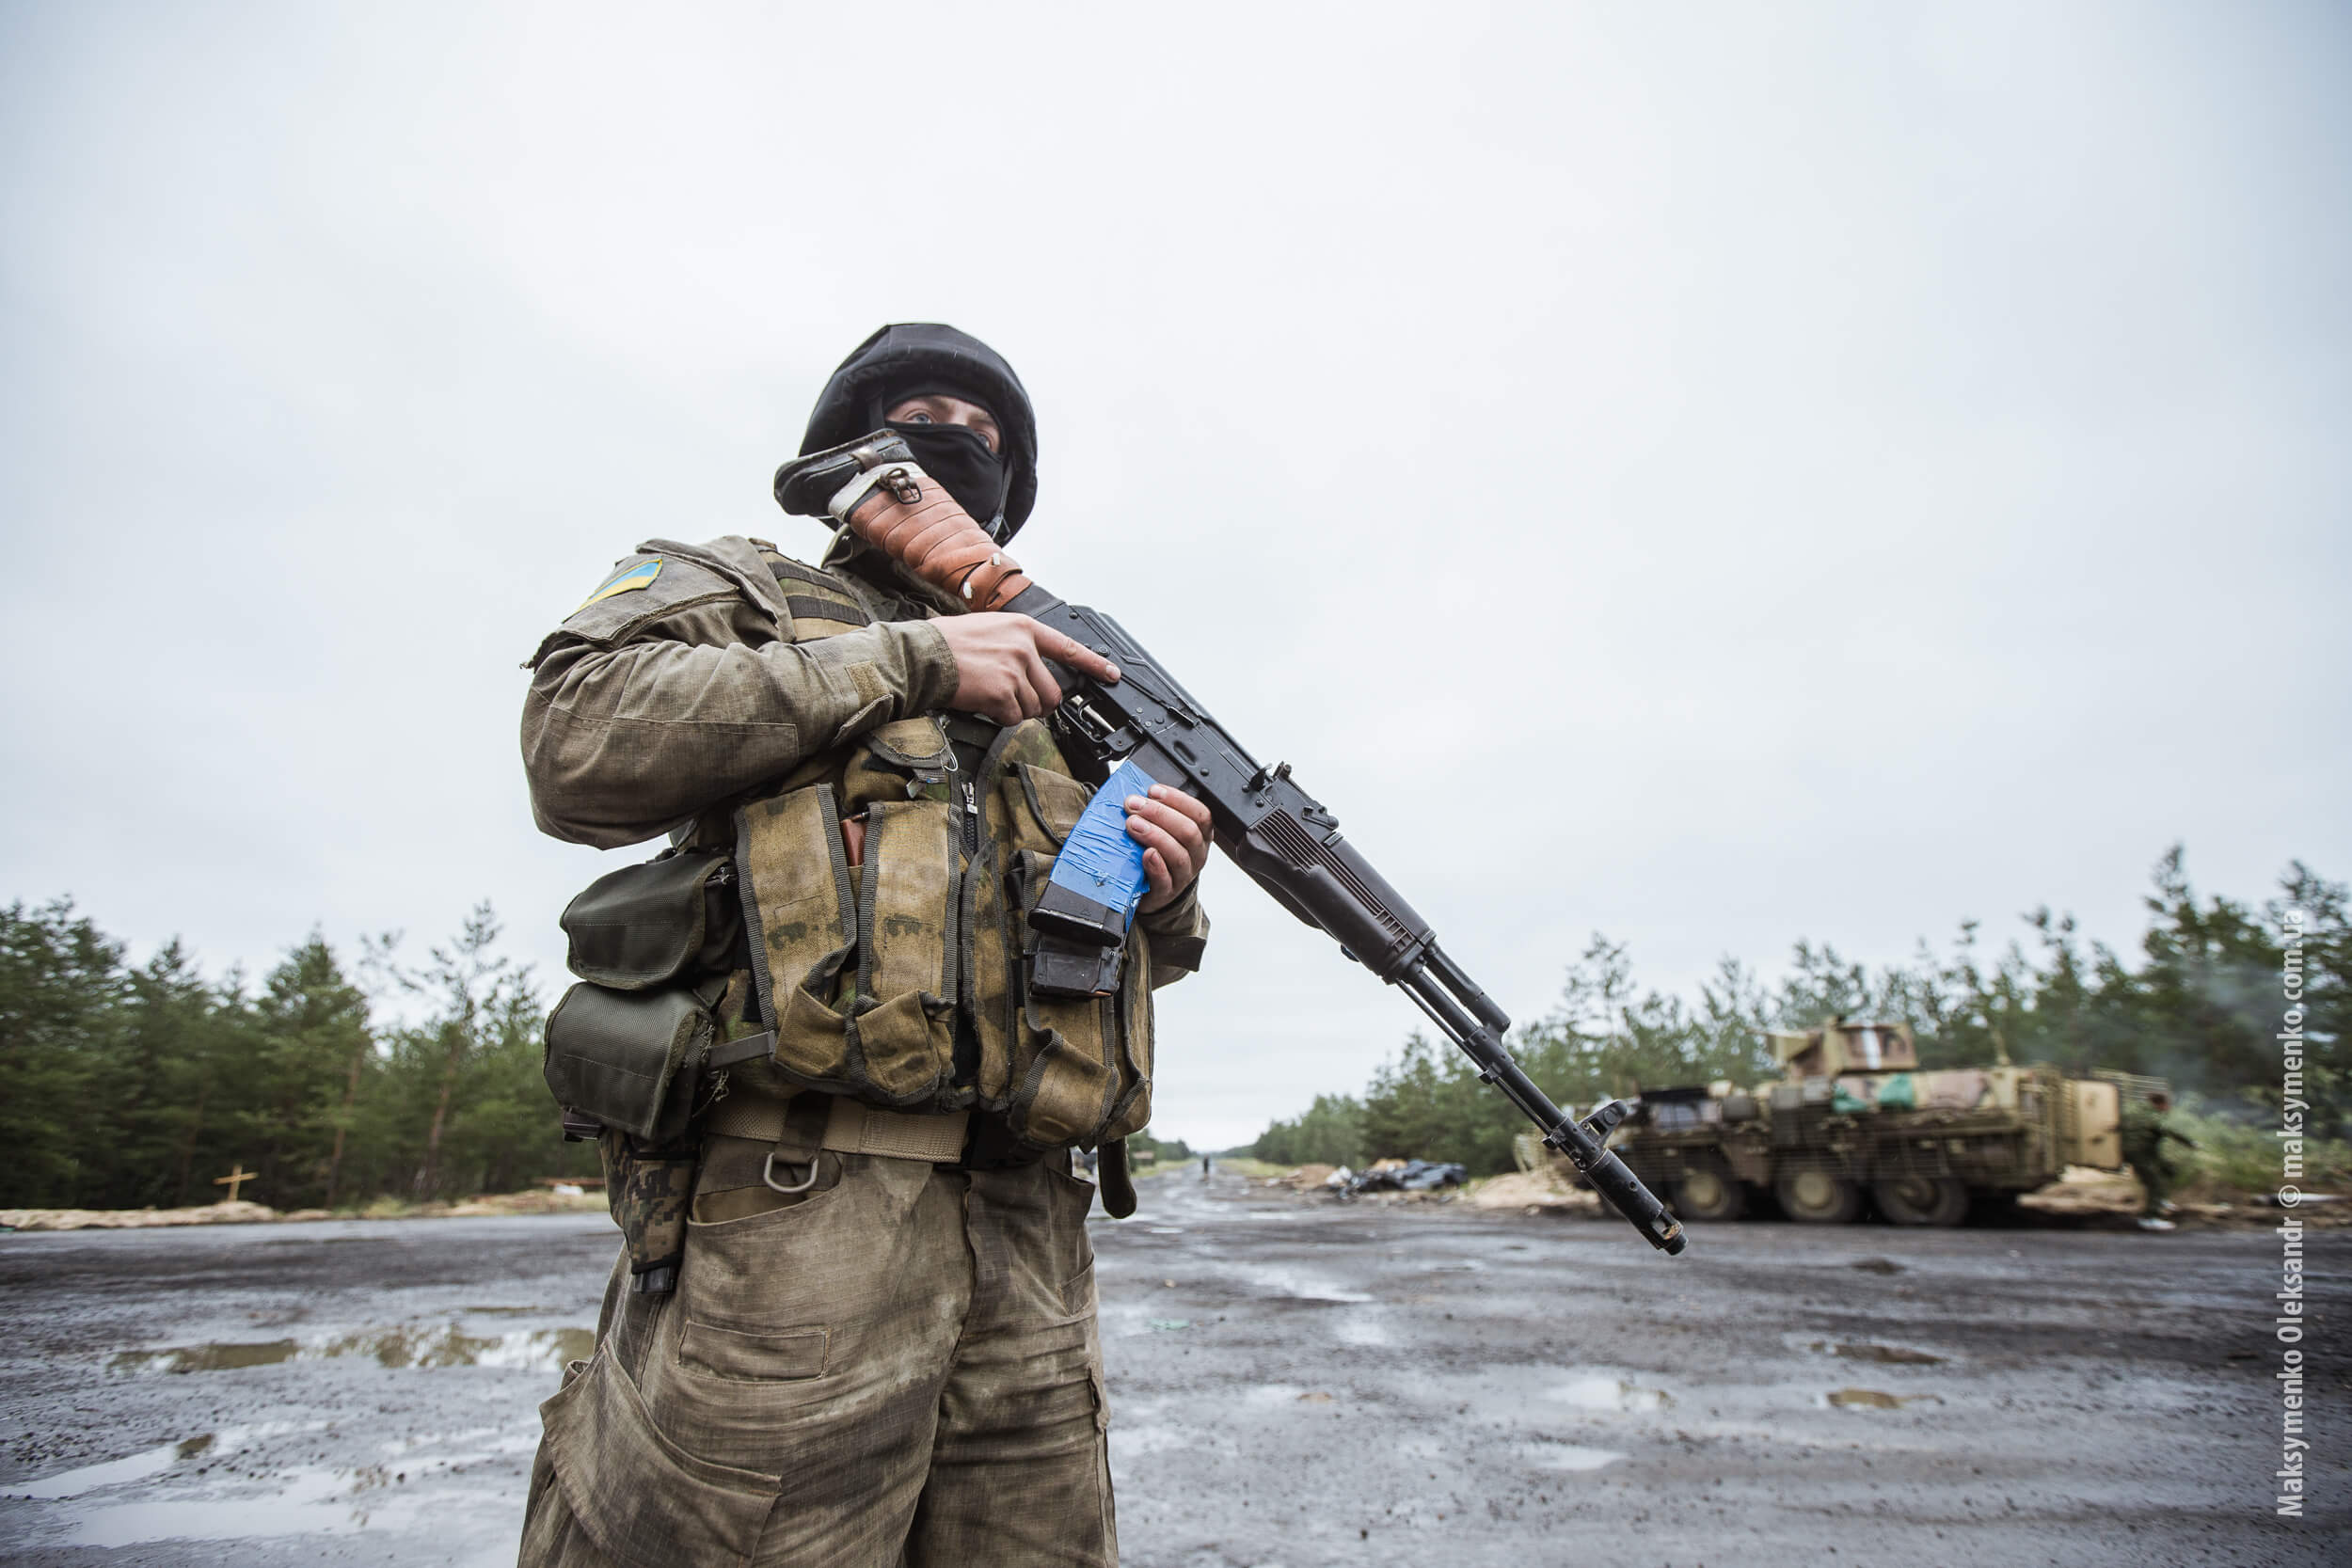 Smeets-foto1-Ukraine army cuts off main road to Sloviansk-27 juni 2014-Sasha Maksymenko-Flickr